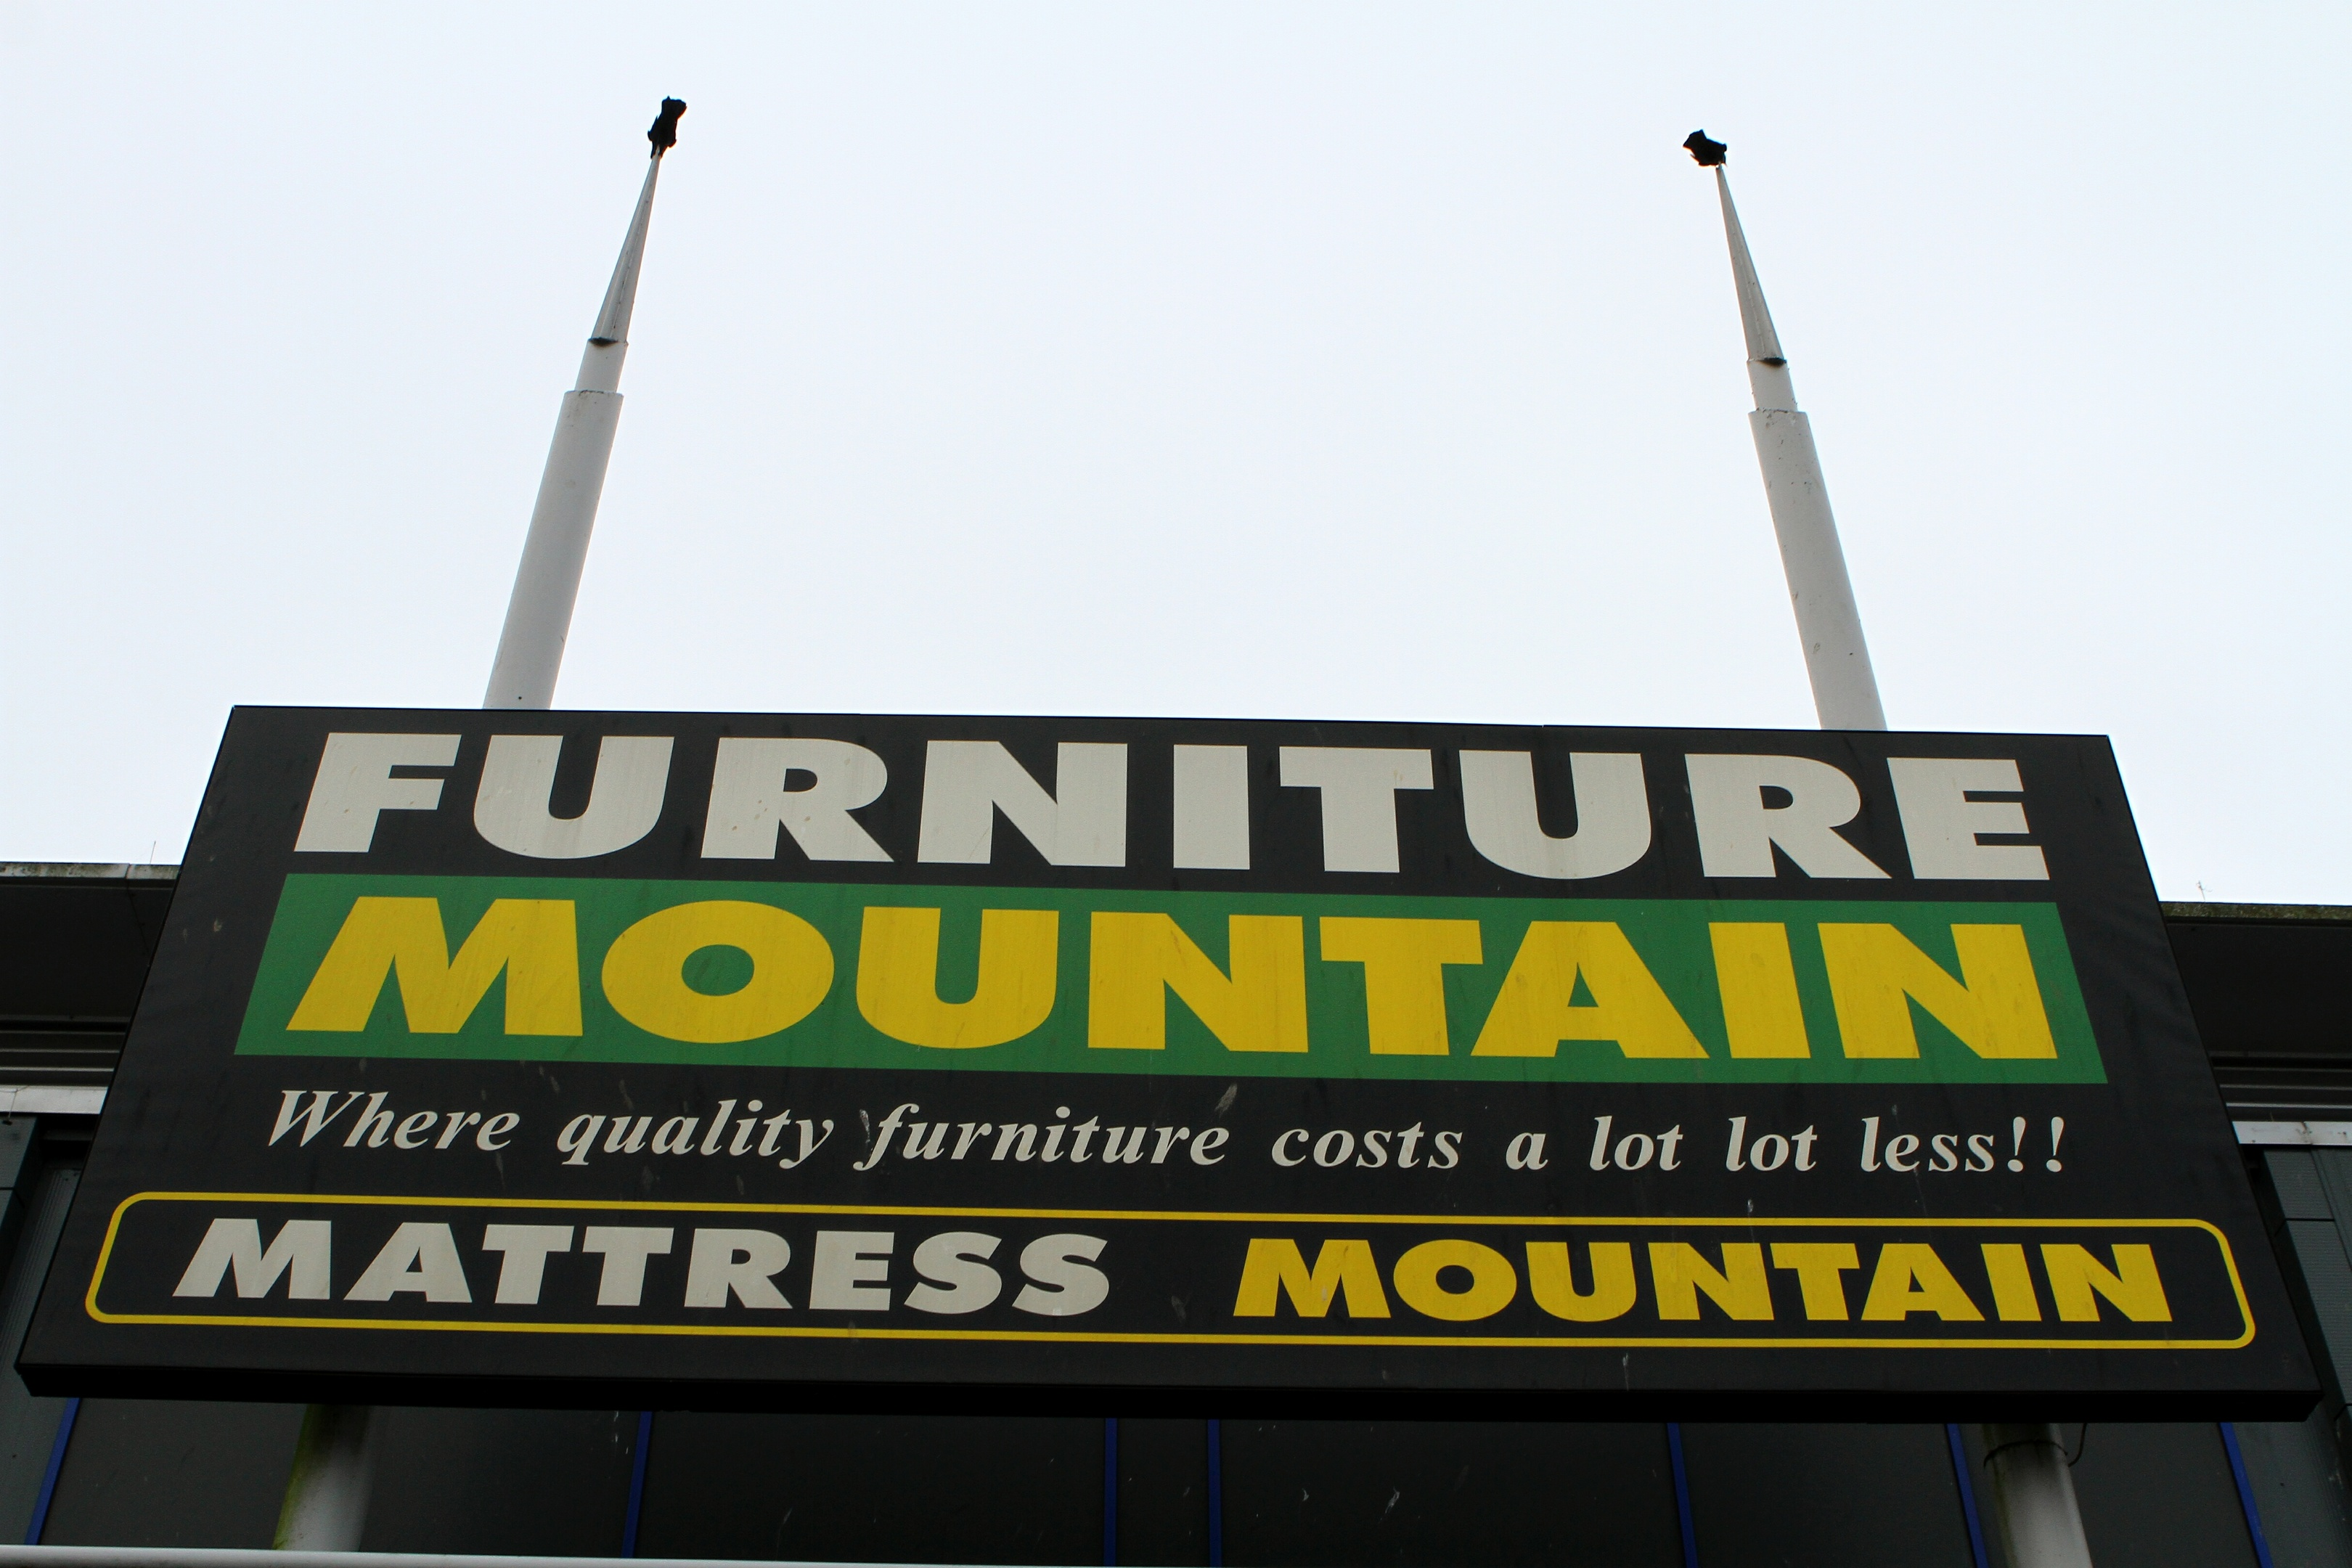 Furniture Mountain has closed unexpectedly in the Kingsway retail park